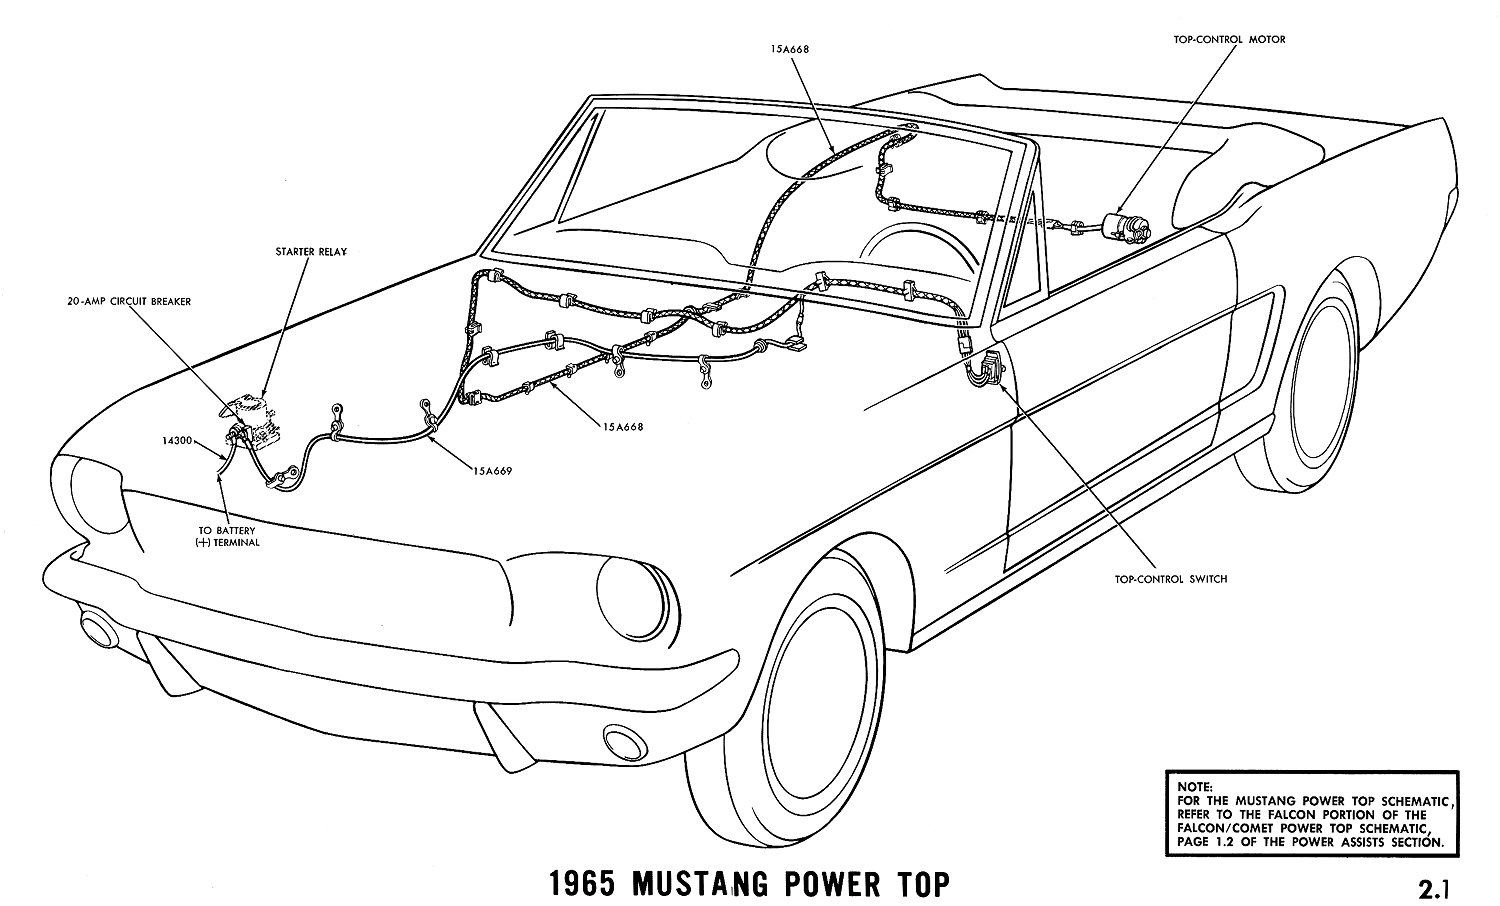 Alternator Wiring Diagram 65 Mustang Library Alt 1965 Power Top Pictorial Or Schematic